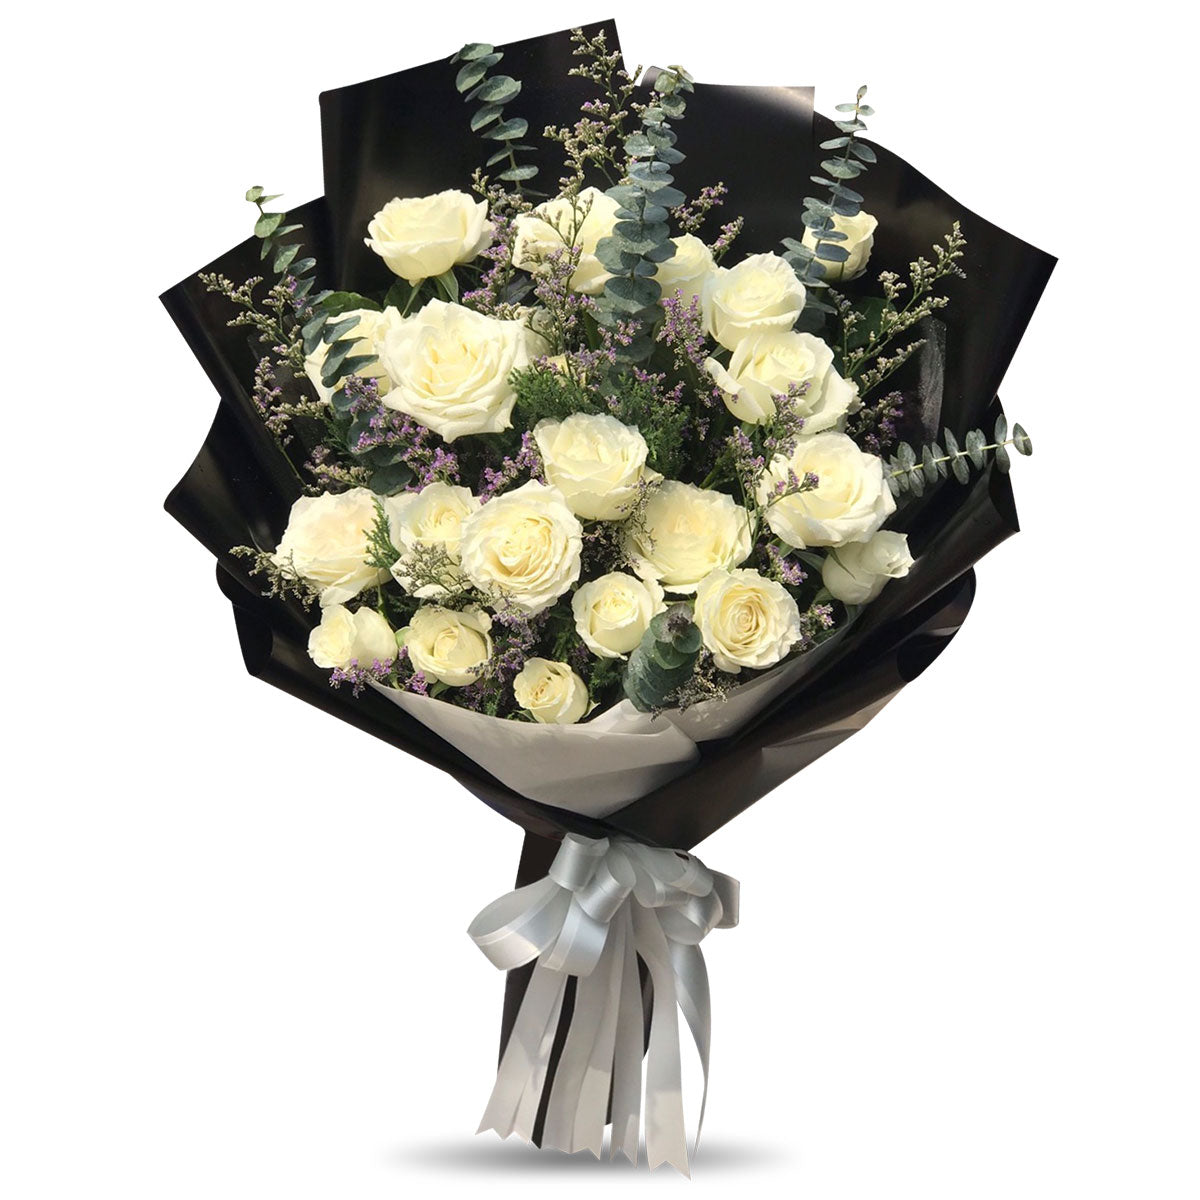 Large Bouquet Of 20 White Roses - April Flora